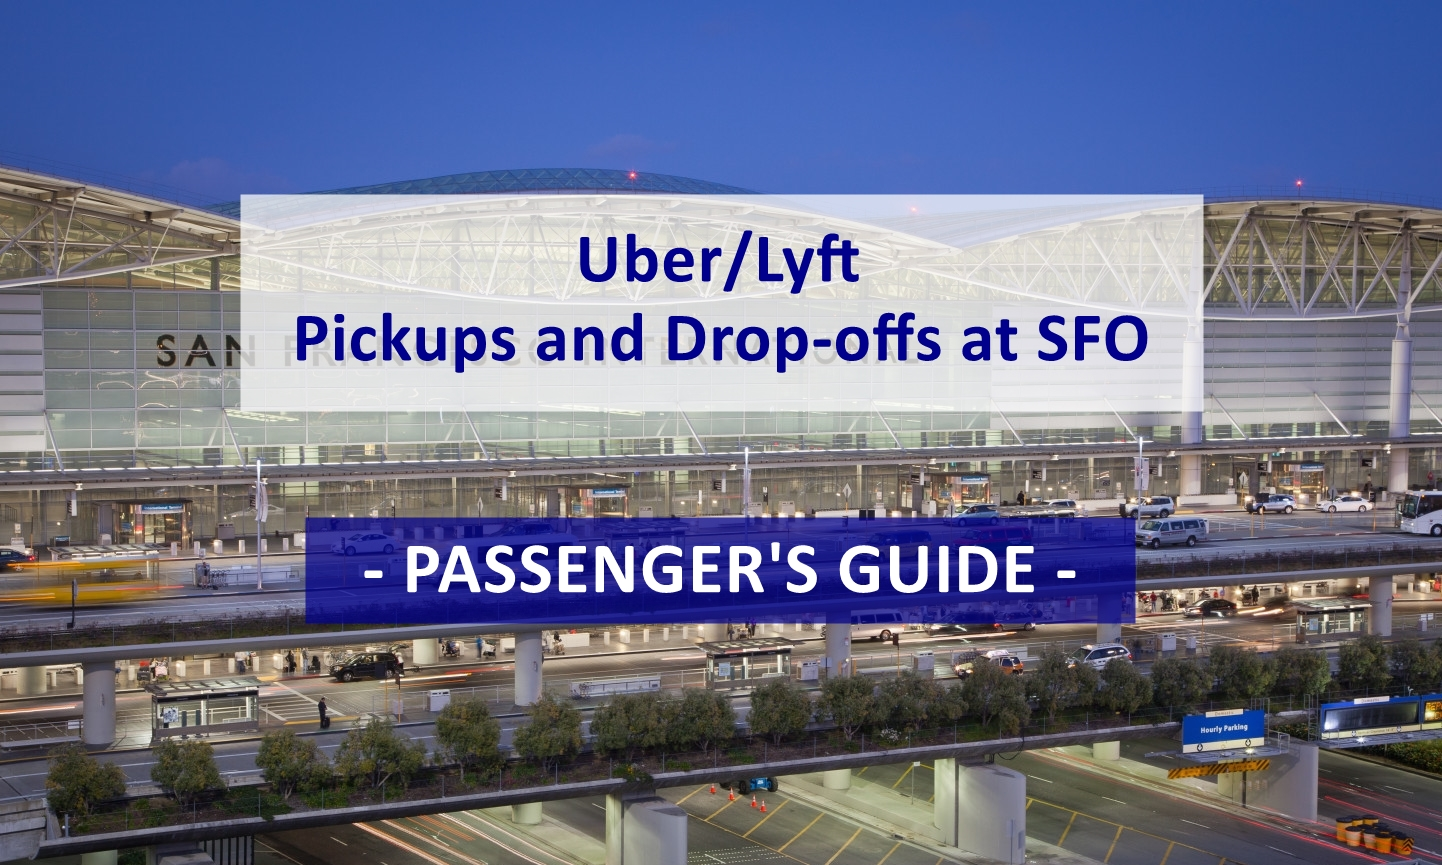 SFO - Uber Lyft Passenger Guide to Pickups and Drop-offs